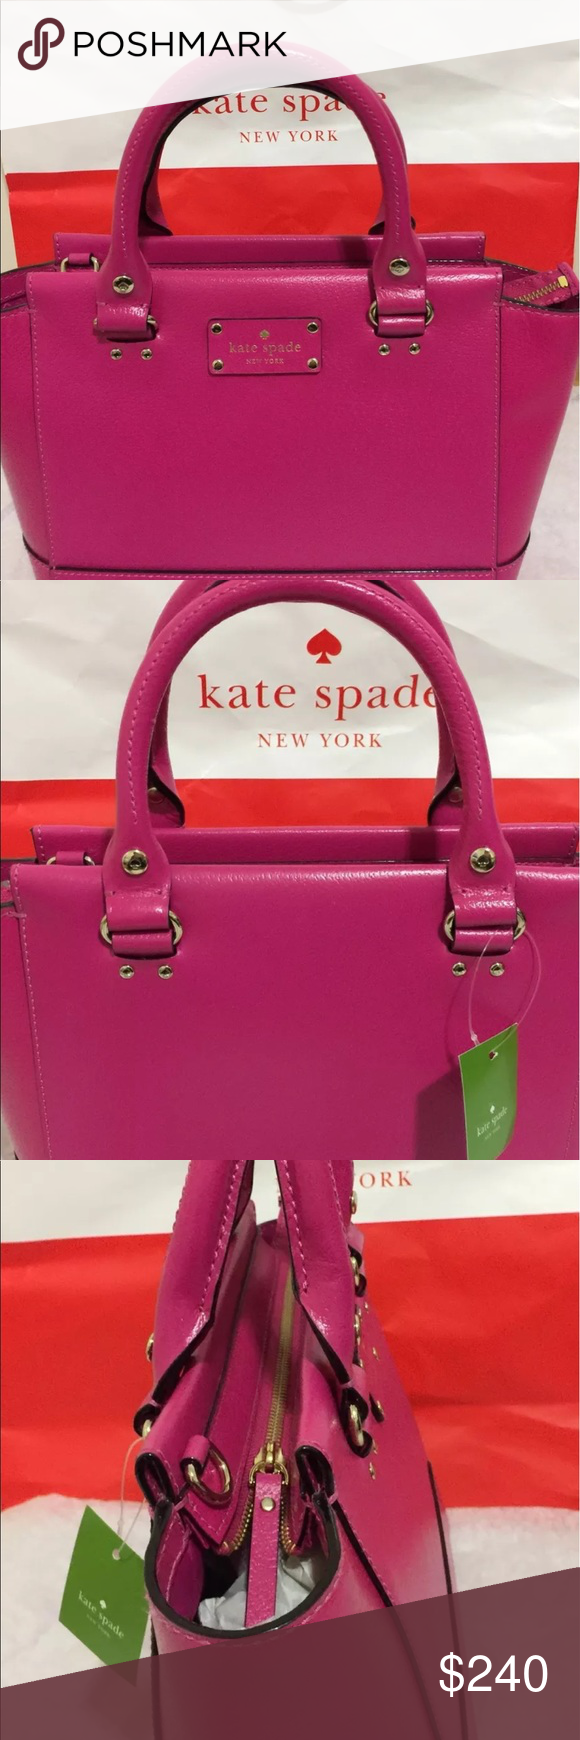 9db9dd9192f2e KATE SPADE Small CAMRYN pink Leather Handbag  279.99 with original tag. BRAND  NEW kate spade Bags Satchels